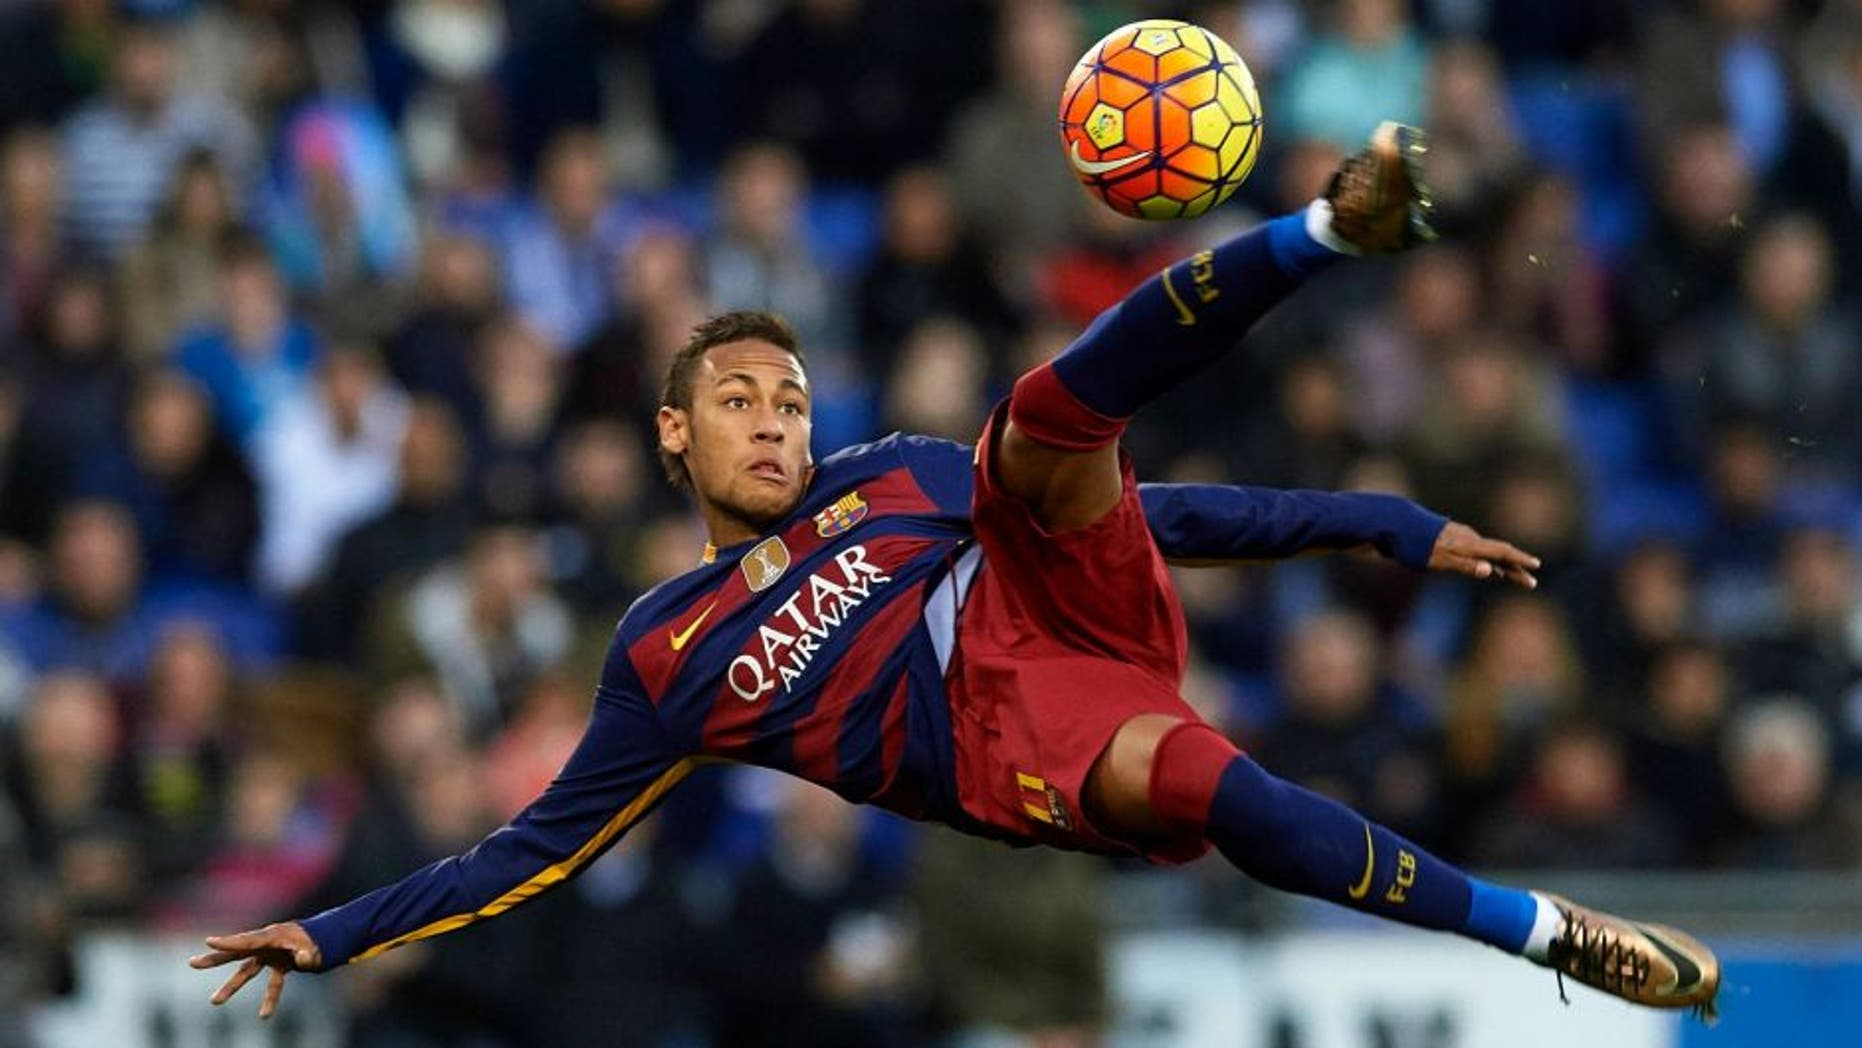 BARCELONA, SPAIN - JANUARY 02: Neymar JR of Barcelona in action during the La Liga match between Real CD Espanyol and FC Barcelona at Cornella-El Prat Stadium on January 2, 2016 in Barcelona, Spain. (Photo by Manuel Queimadelos Alonso/Getty Images)